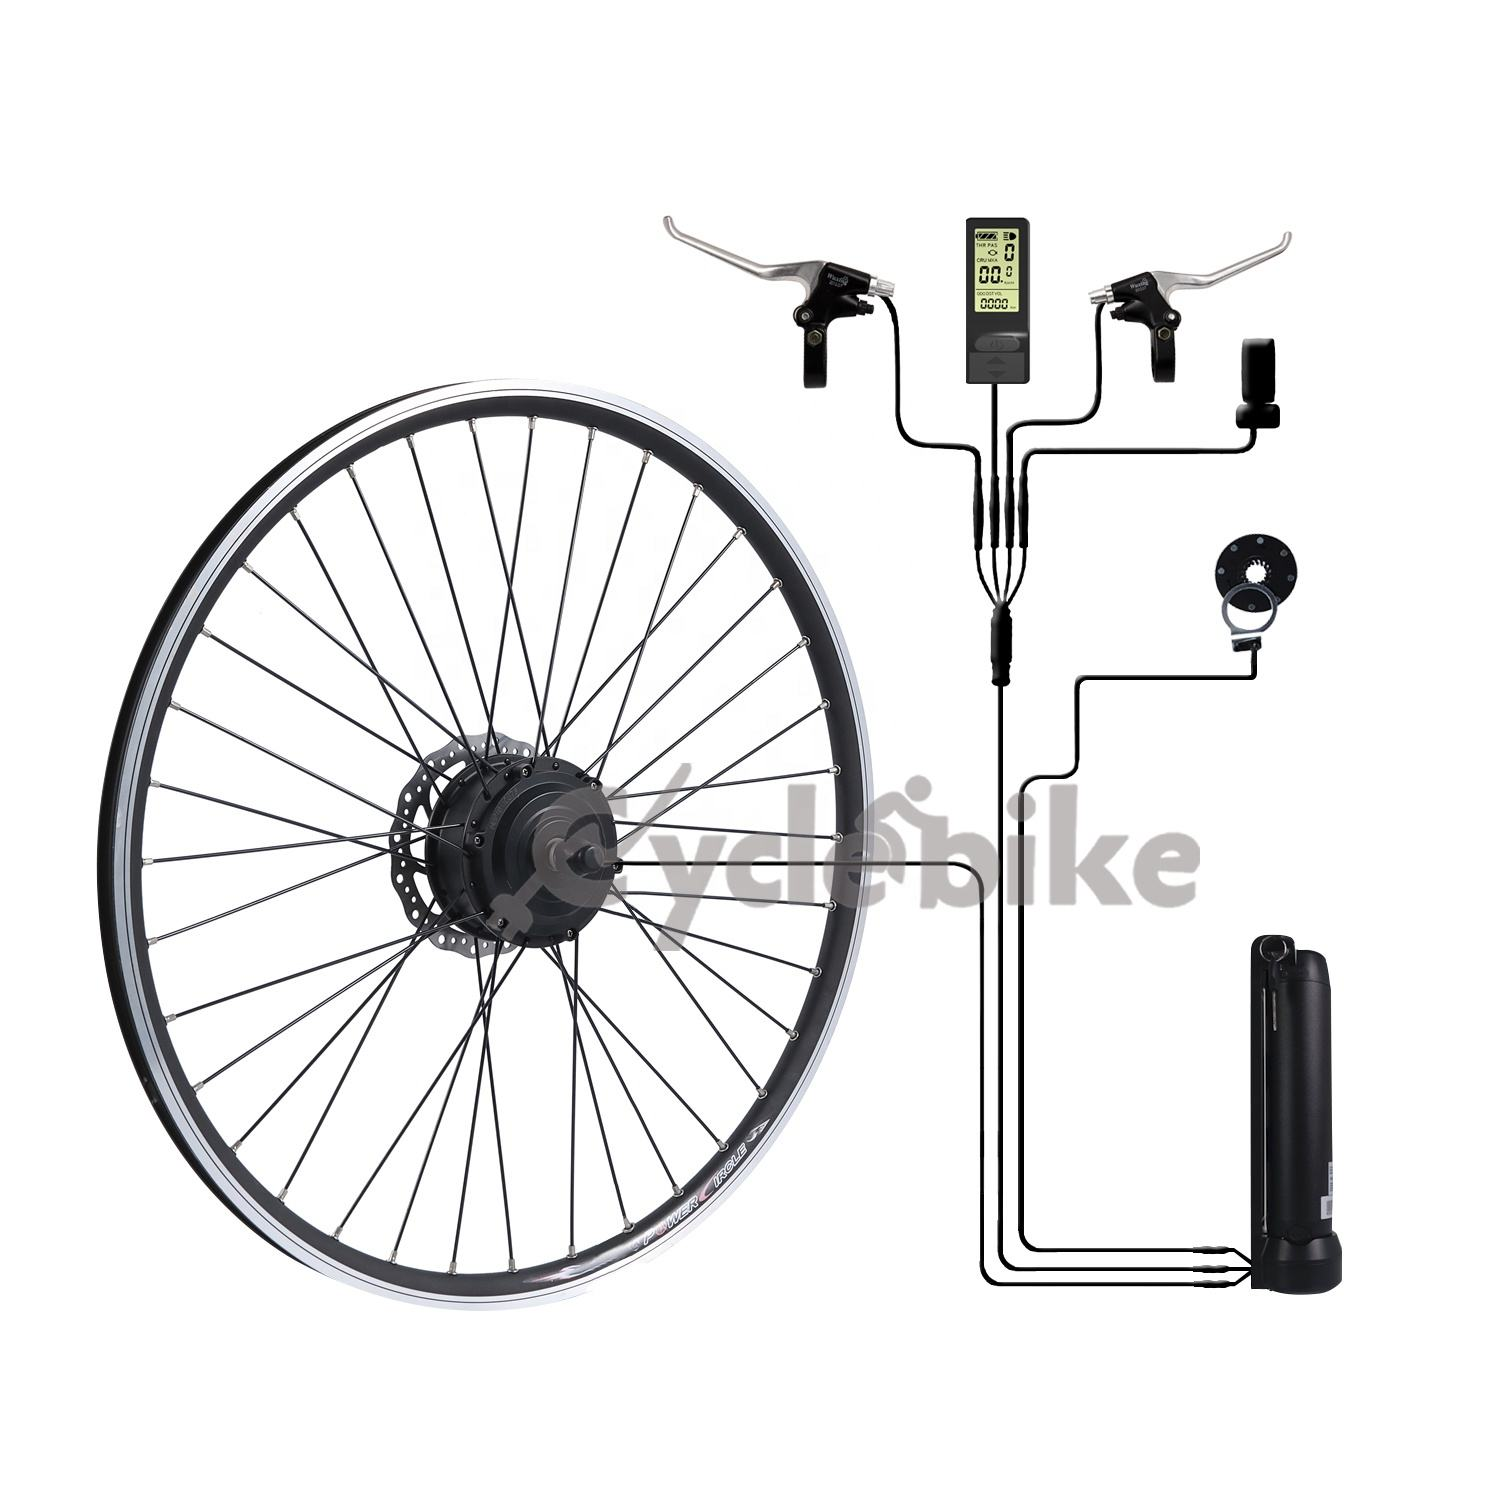 Integrated controller 36v 250w Front Rear Motor wheel electric bike conversion kit with lithium battery